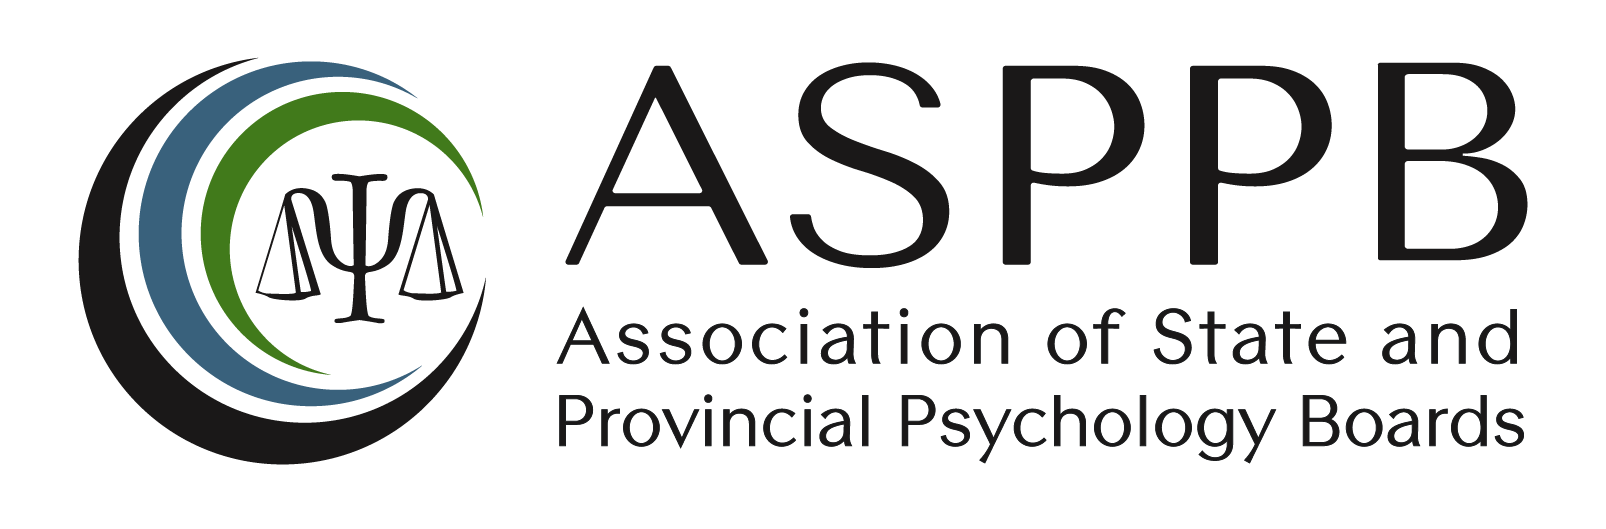 Future American Psychological Association Conventions